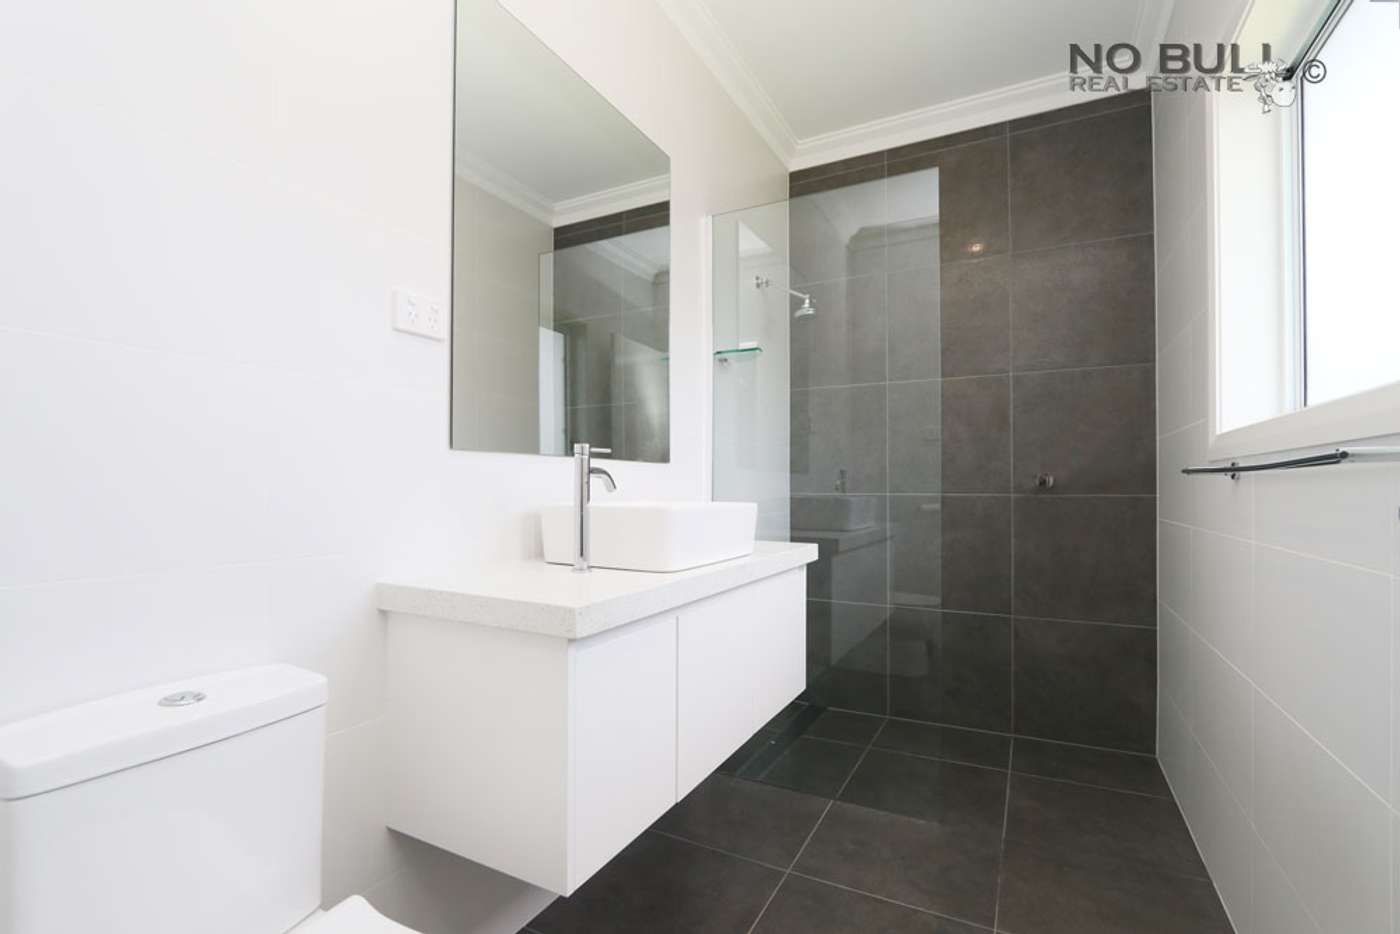 Seventh view of Homely house listing, 37 Conveyor Street, West Wallsend NSW 2286